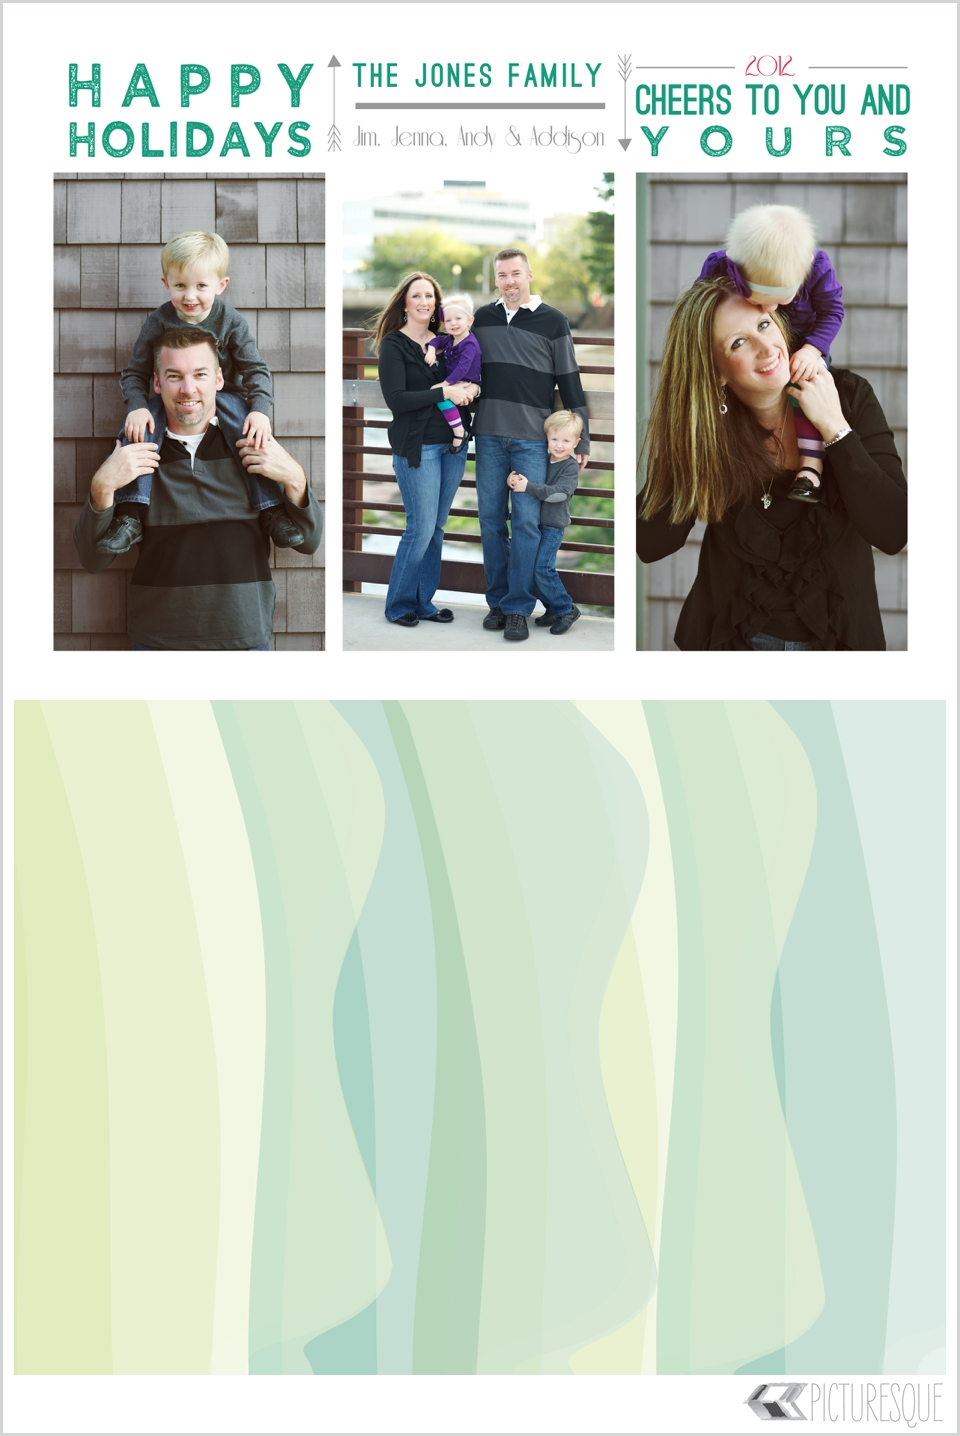 5x7 holiday cards by Picturesque